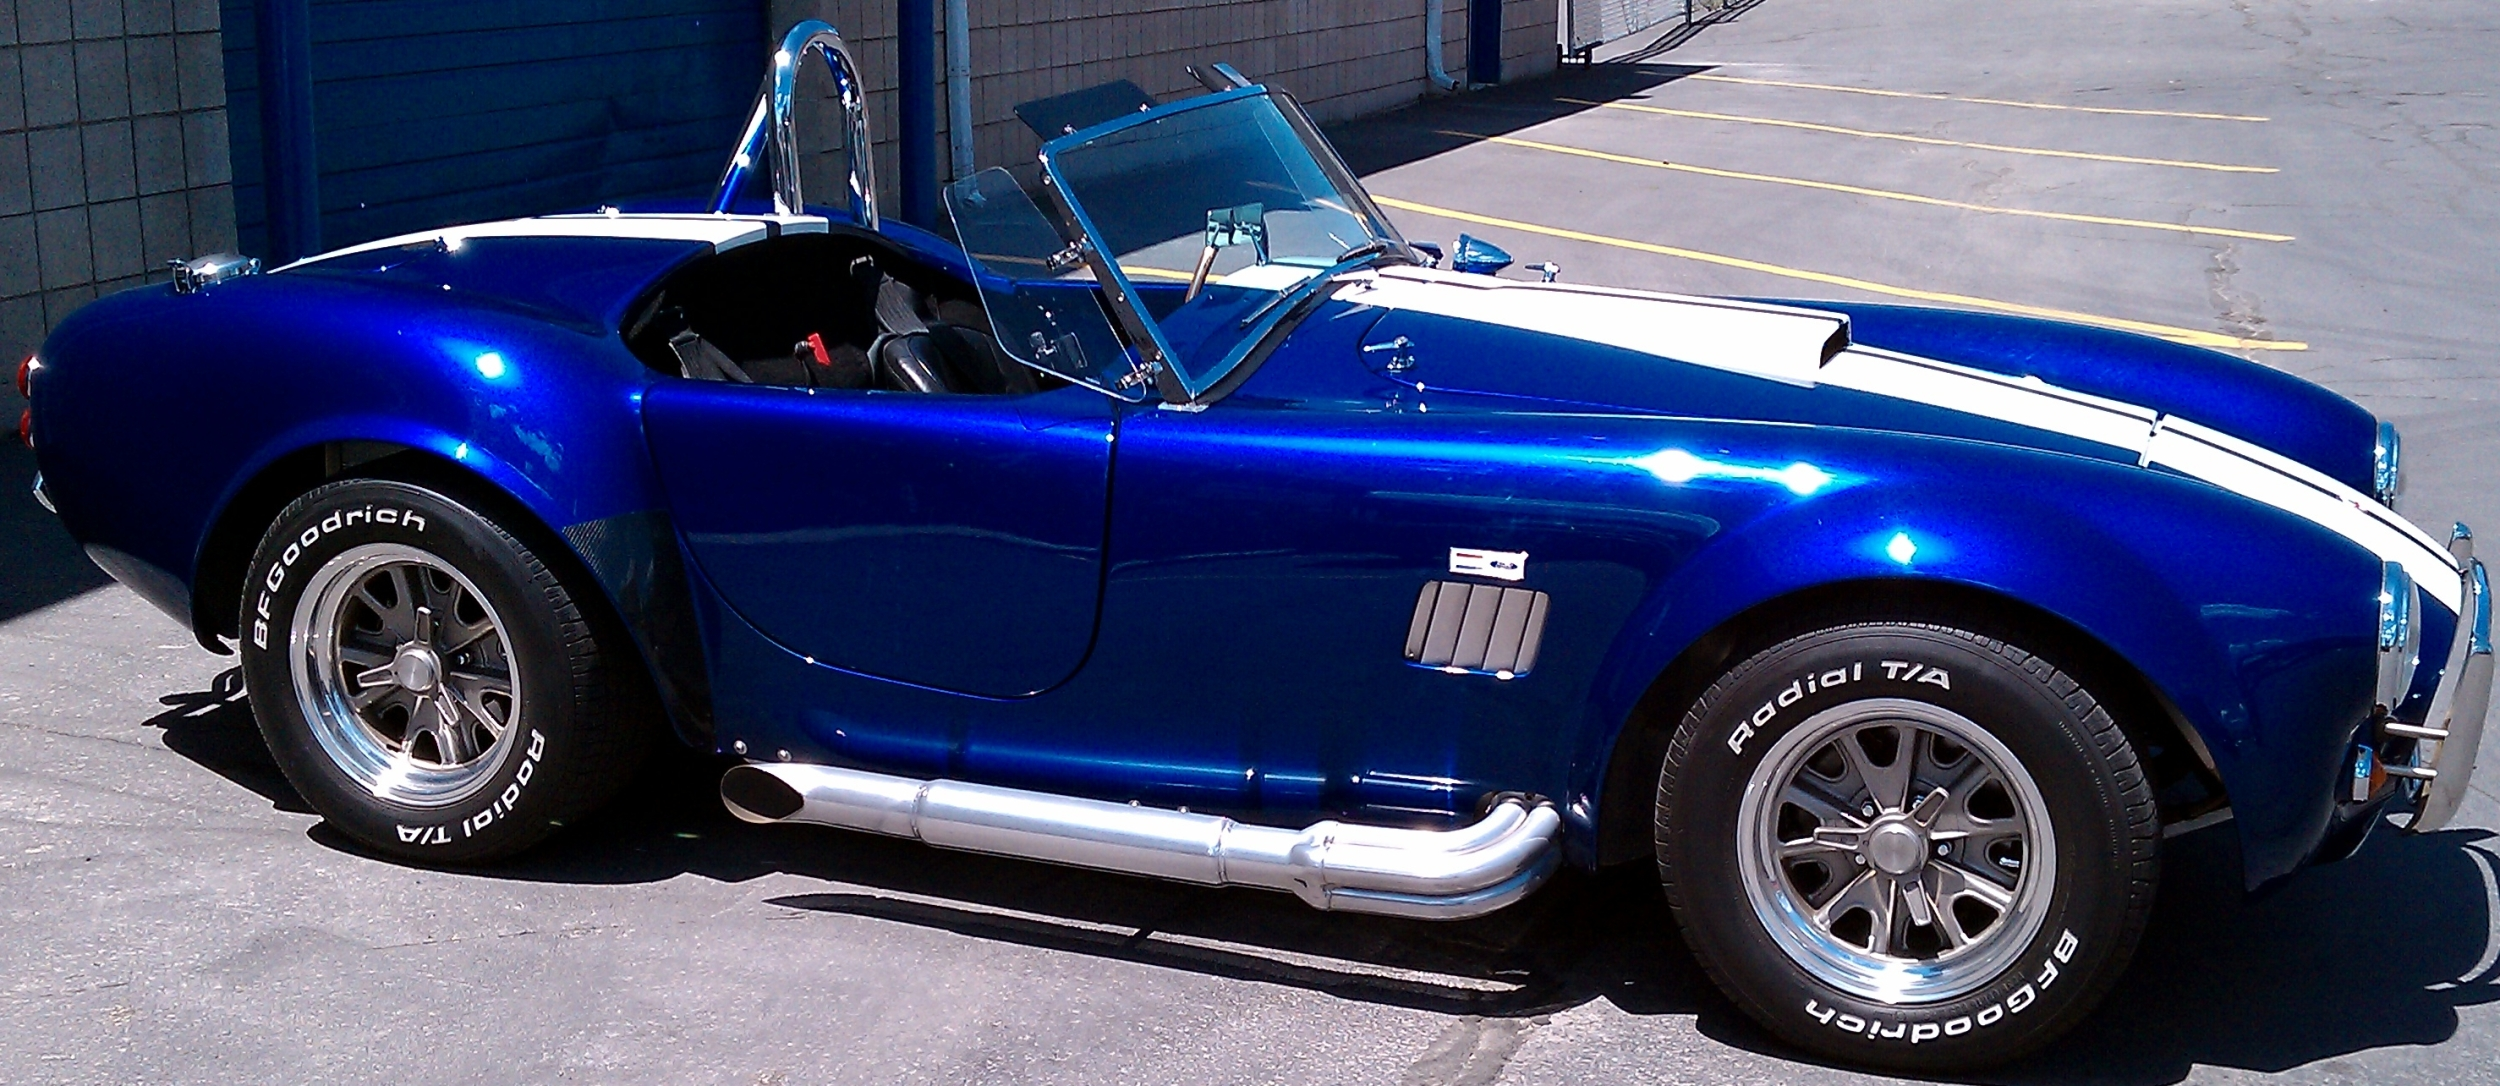 Ac cobra replica photos reviews news specs buy car